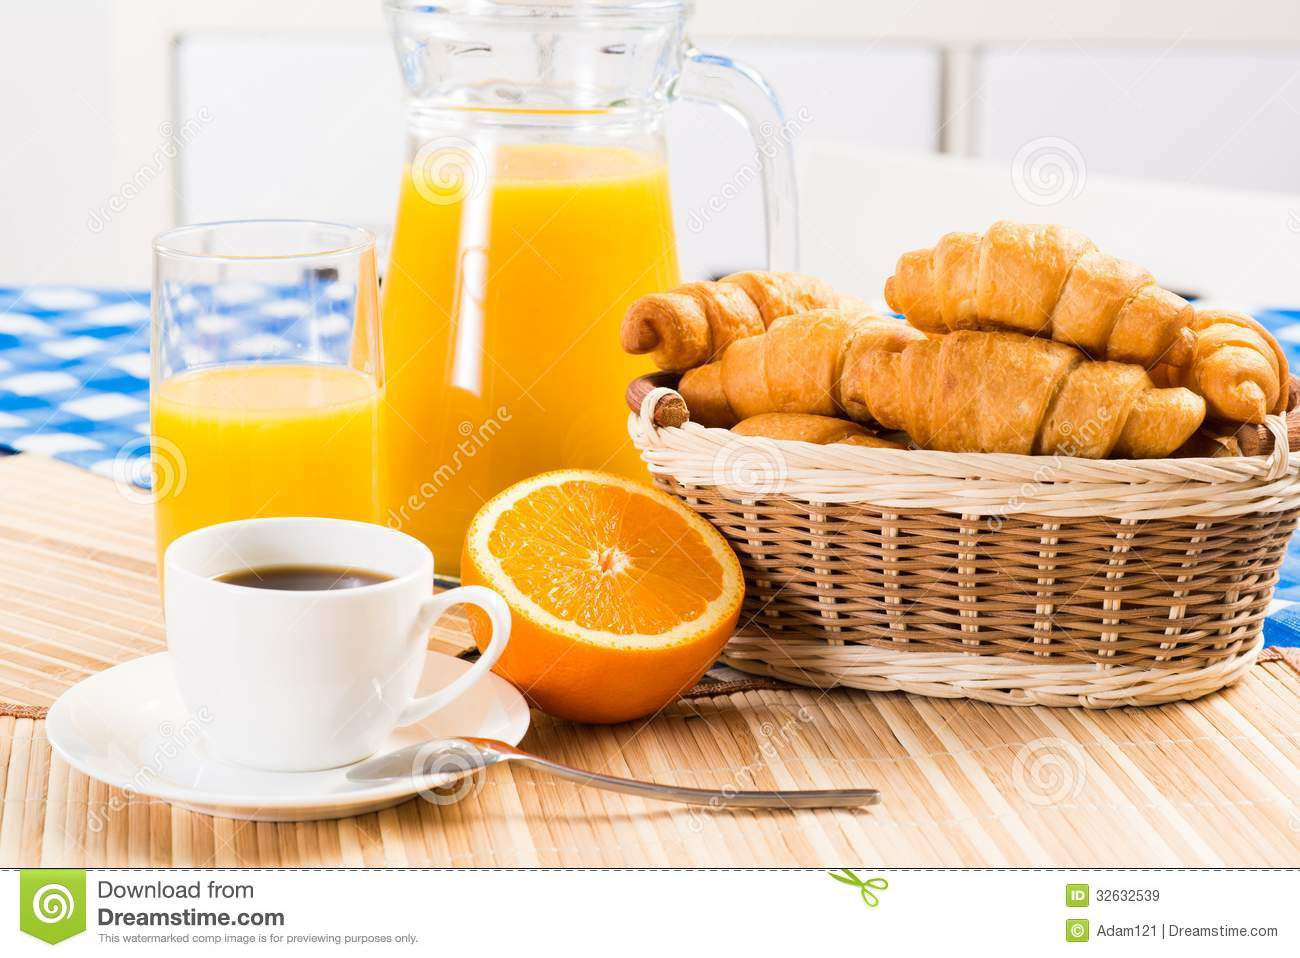 Continental Breakfast Clipart.